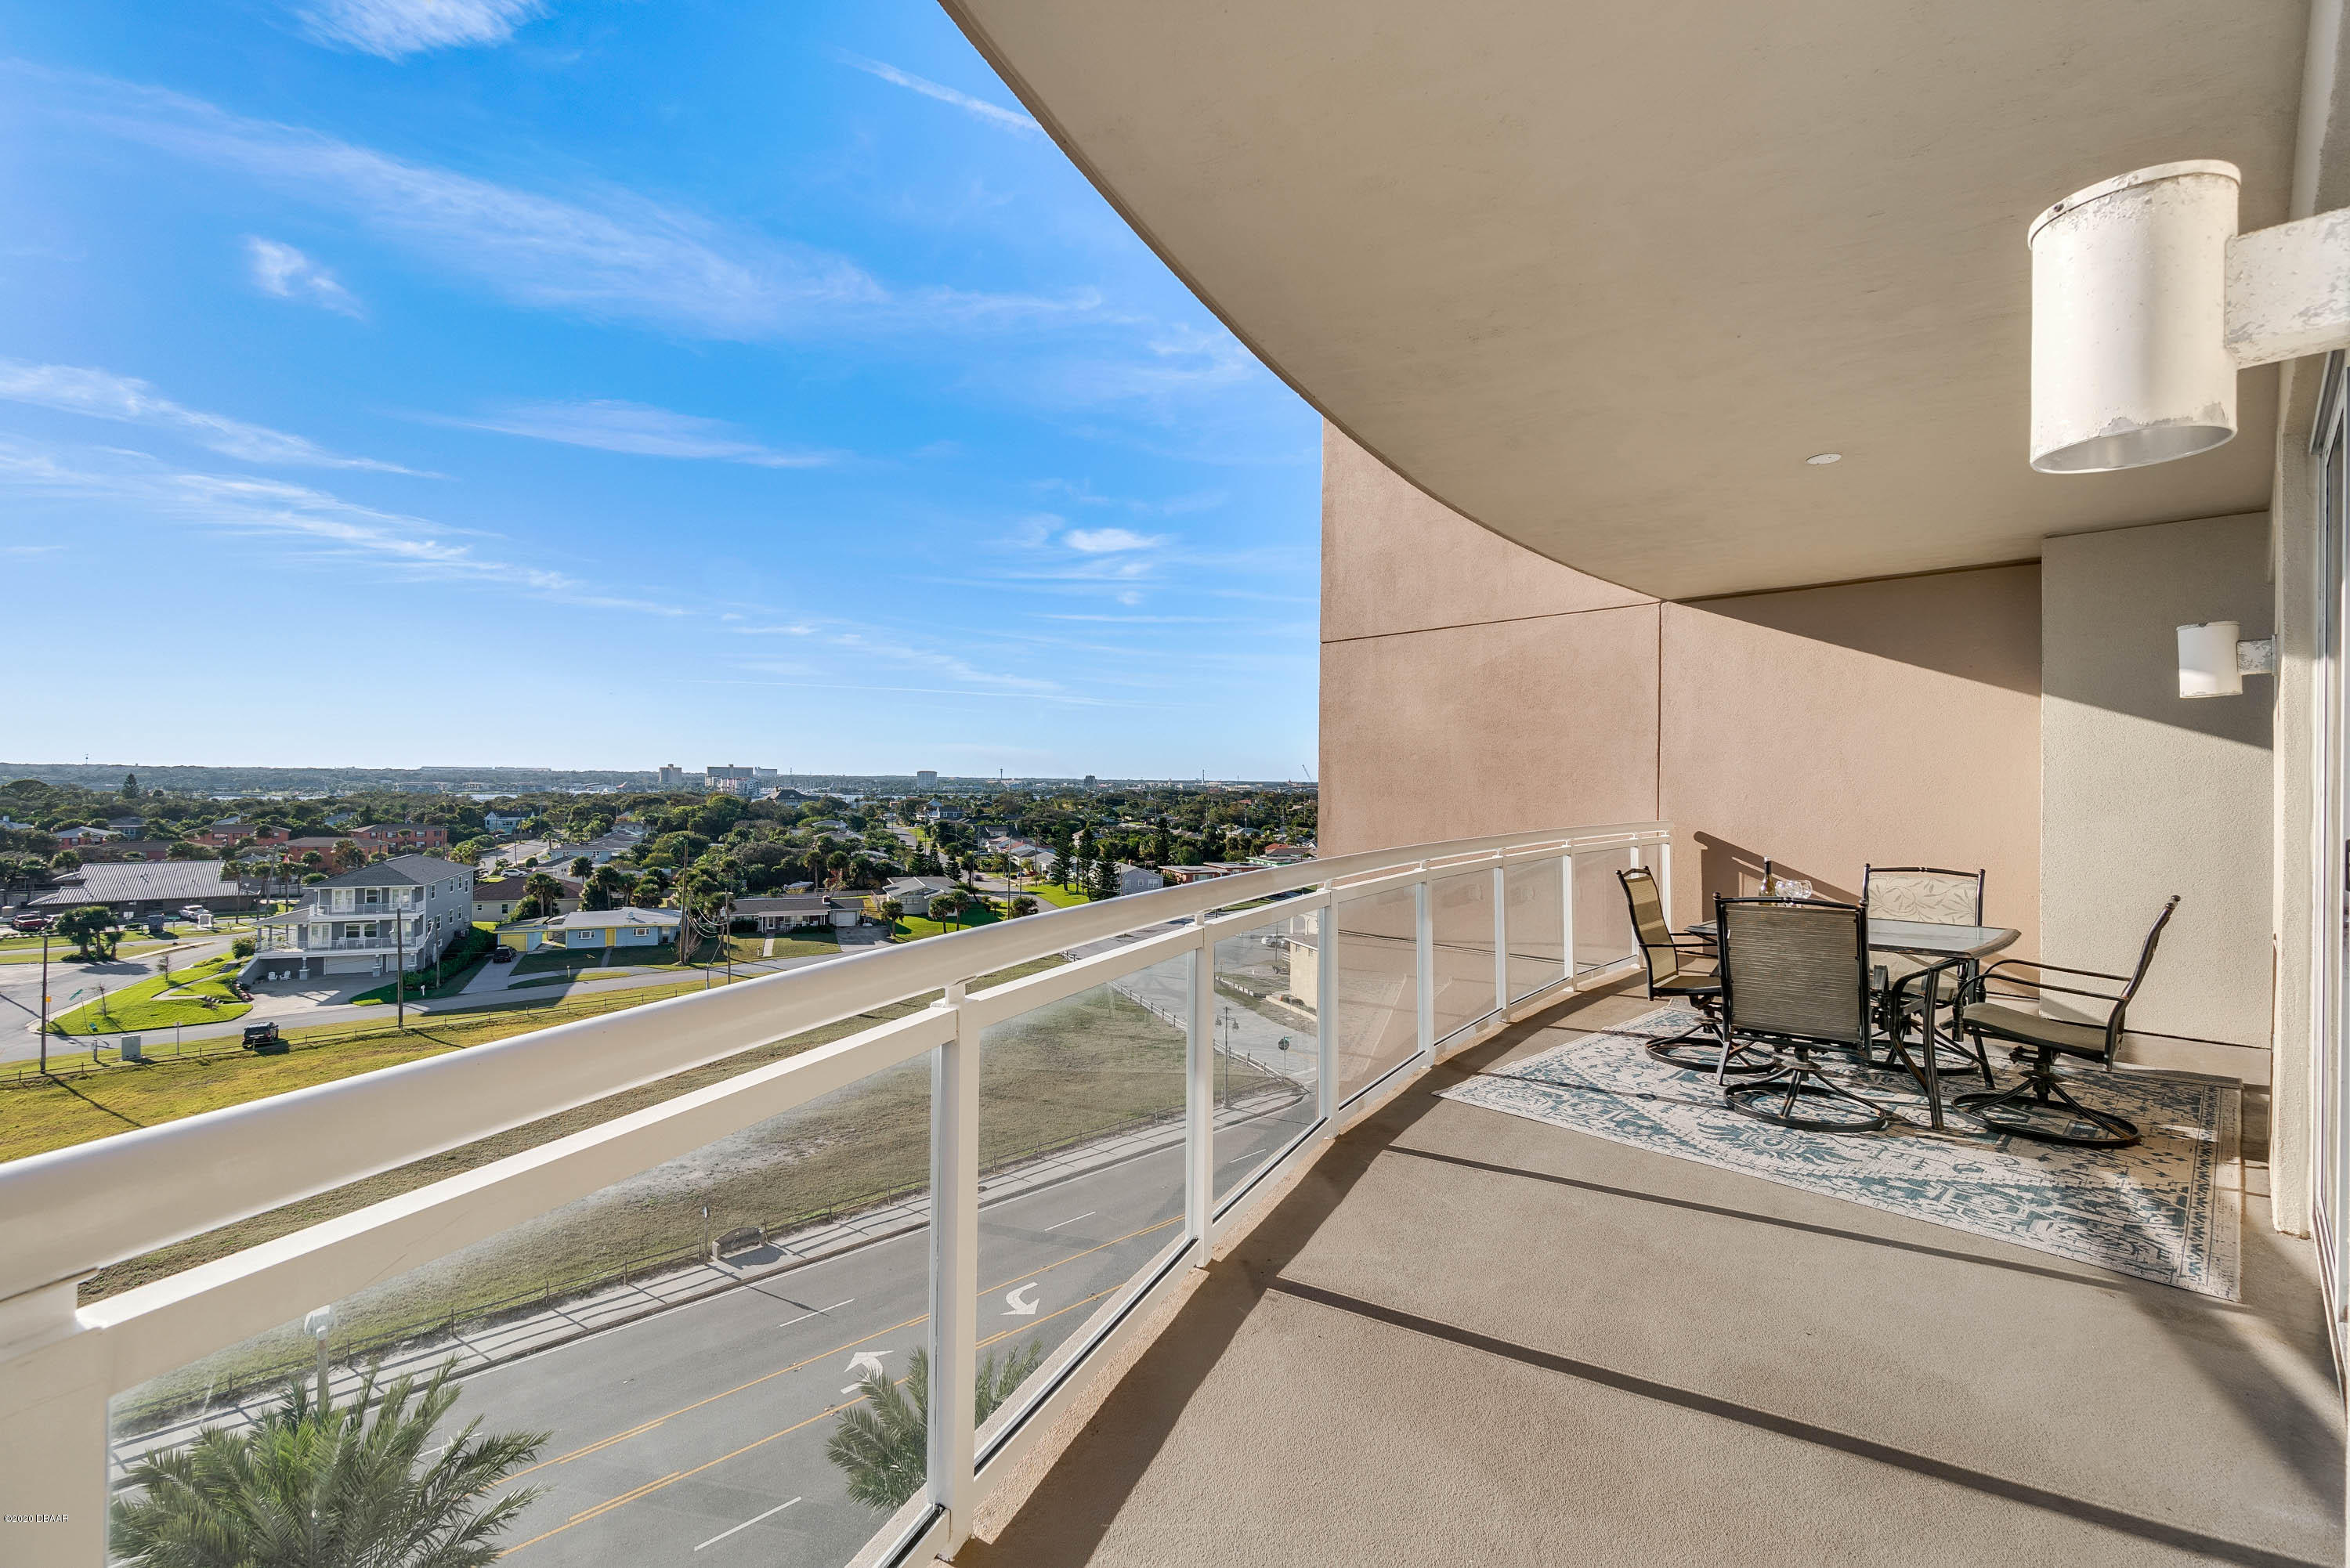 Details for 1925 Atlantic Avenue 703, Daytona Beach Shores, FL 32118